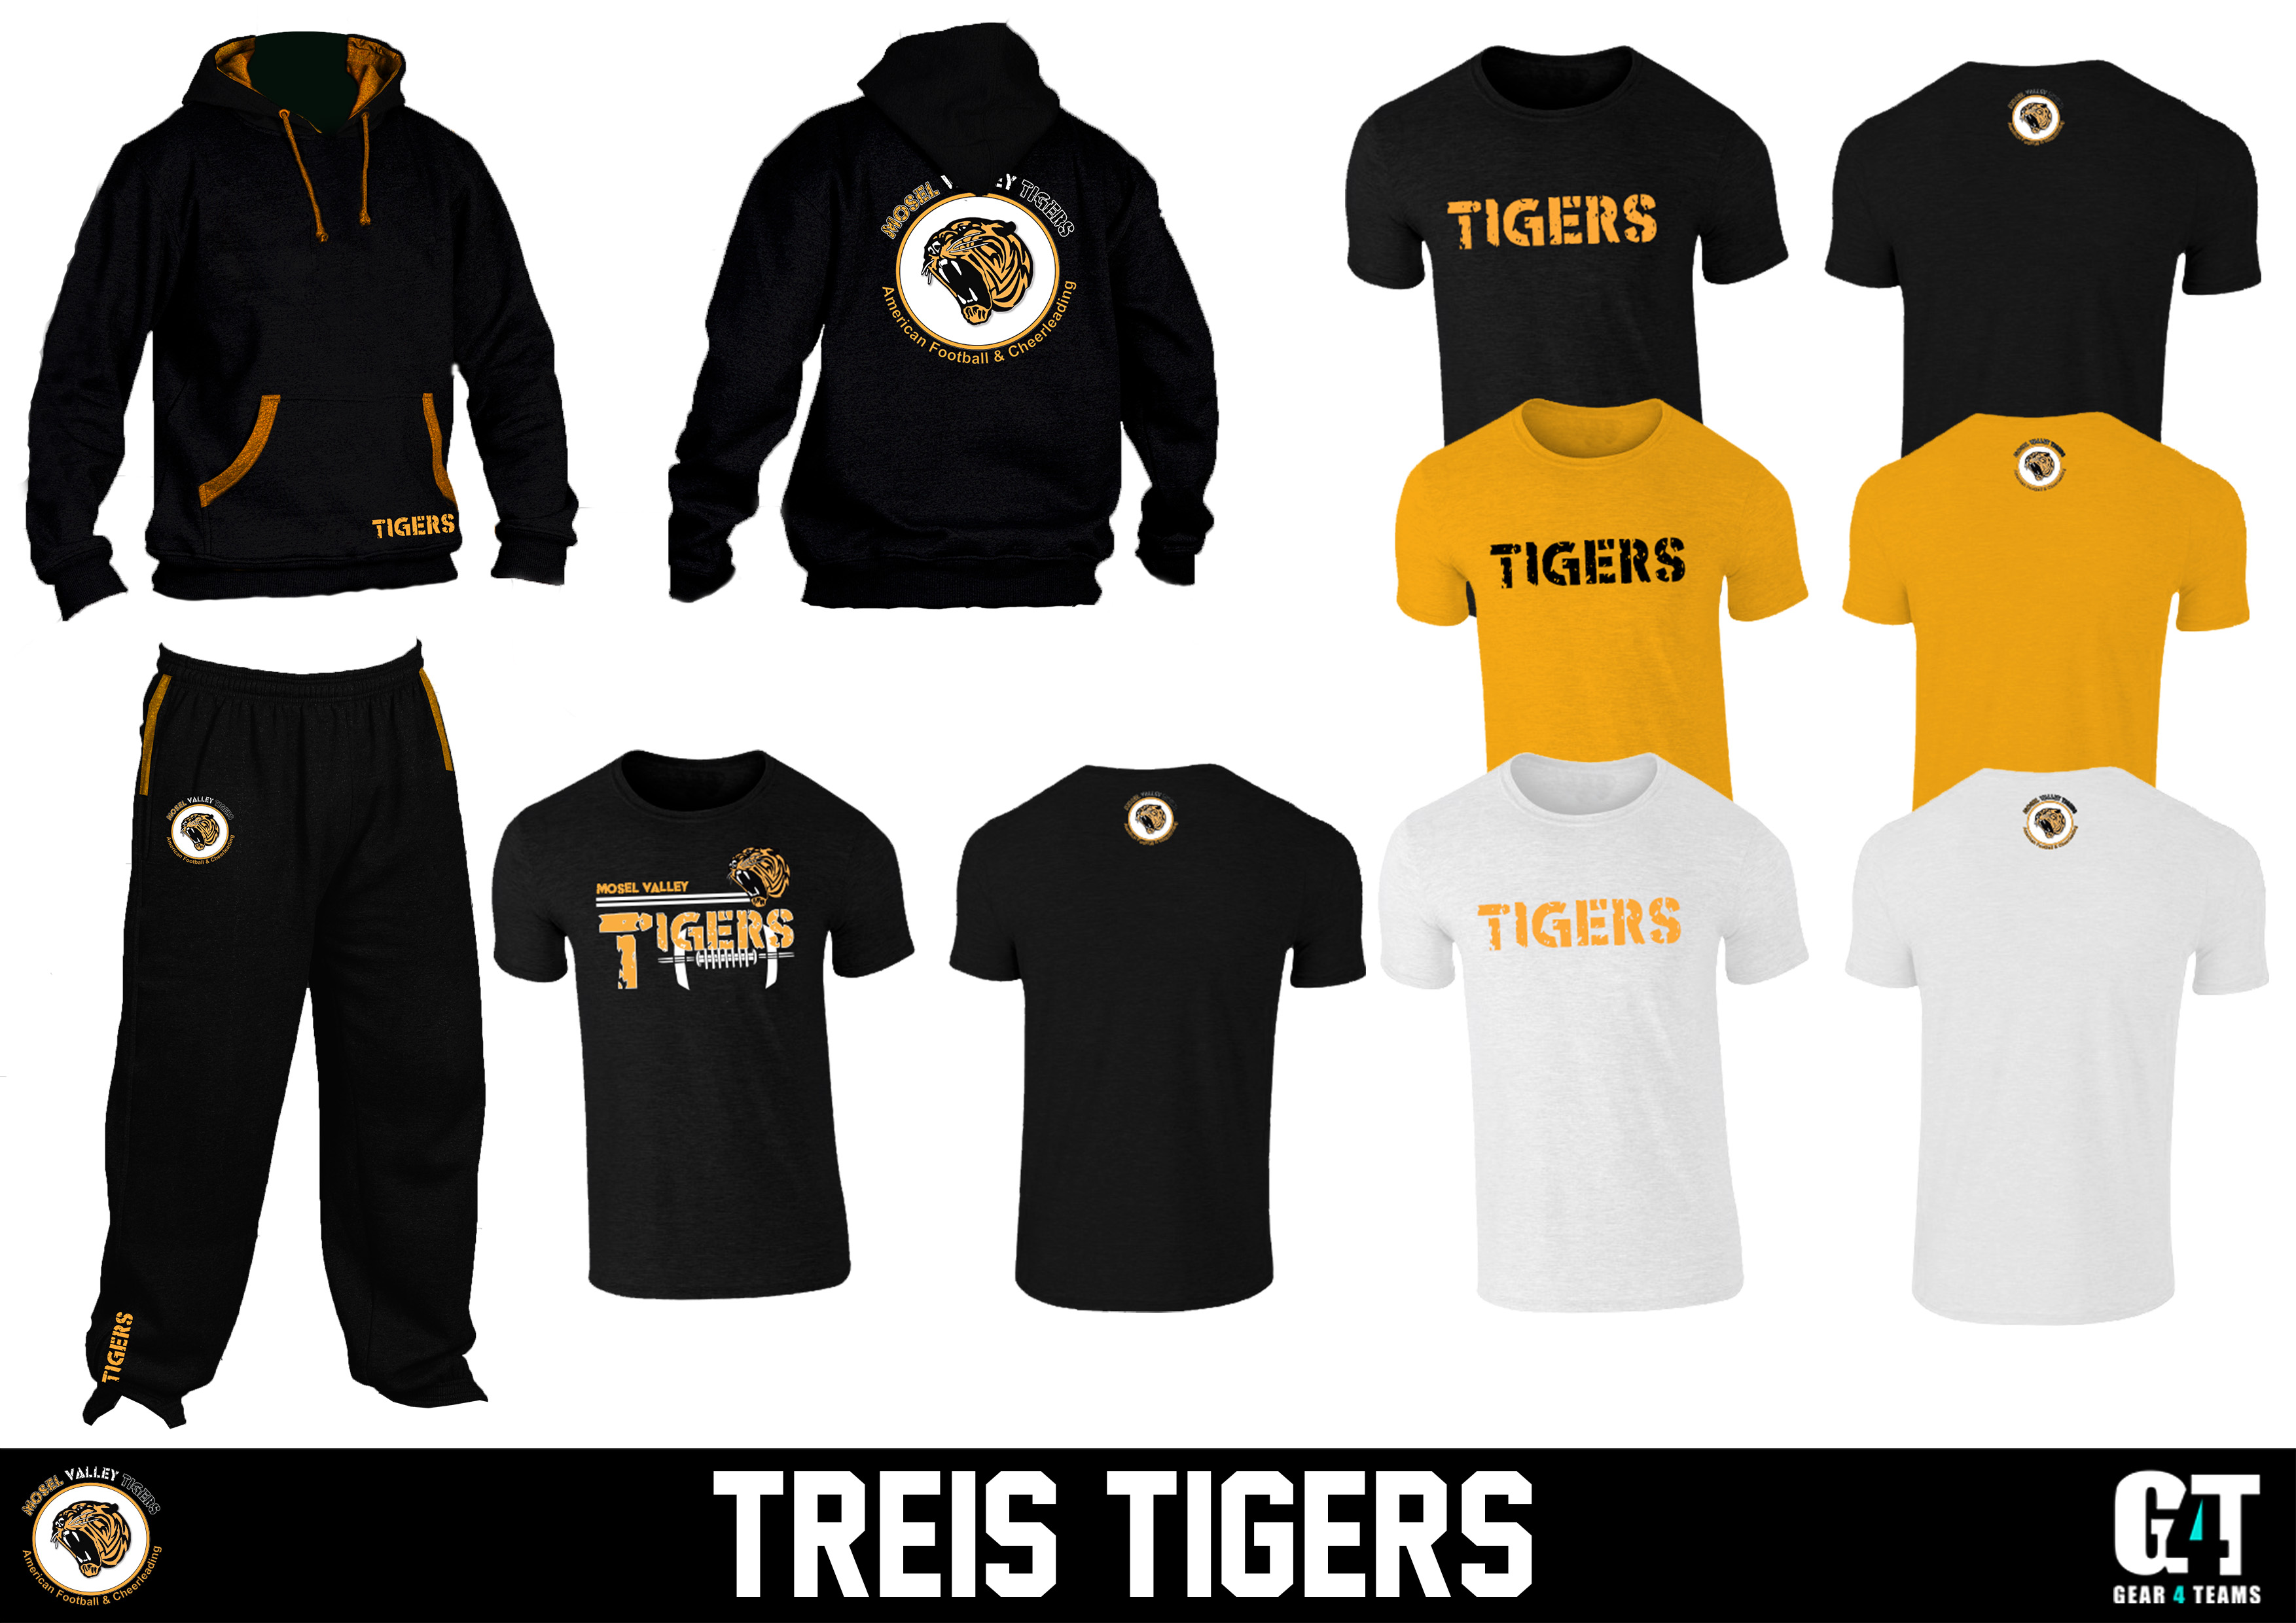 Treis Tigers Fan Gear 14.11.2016 Presentation 2